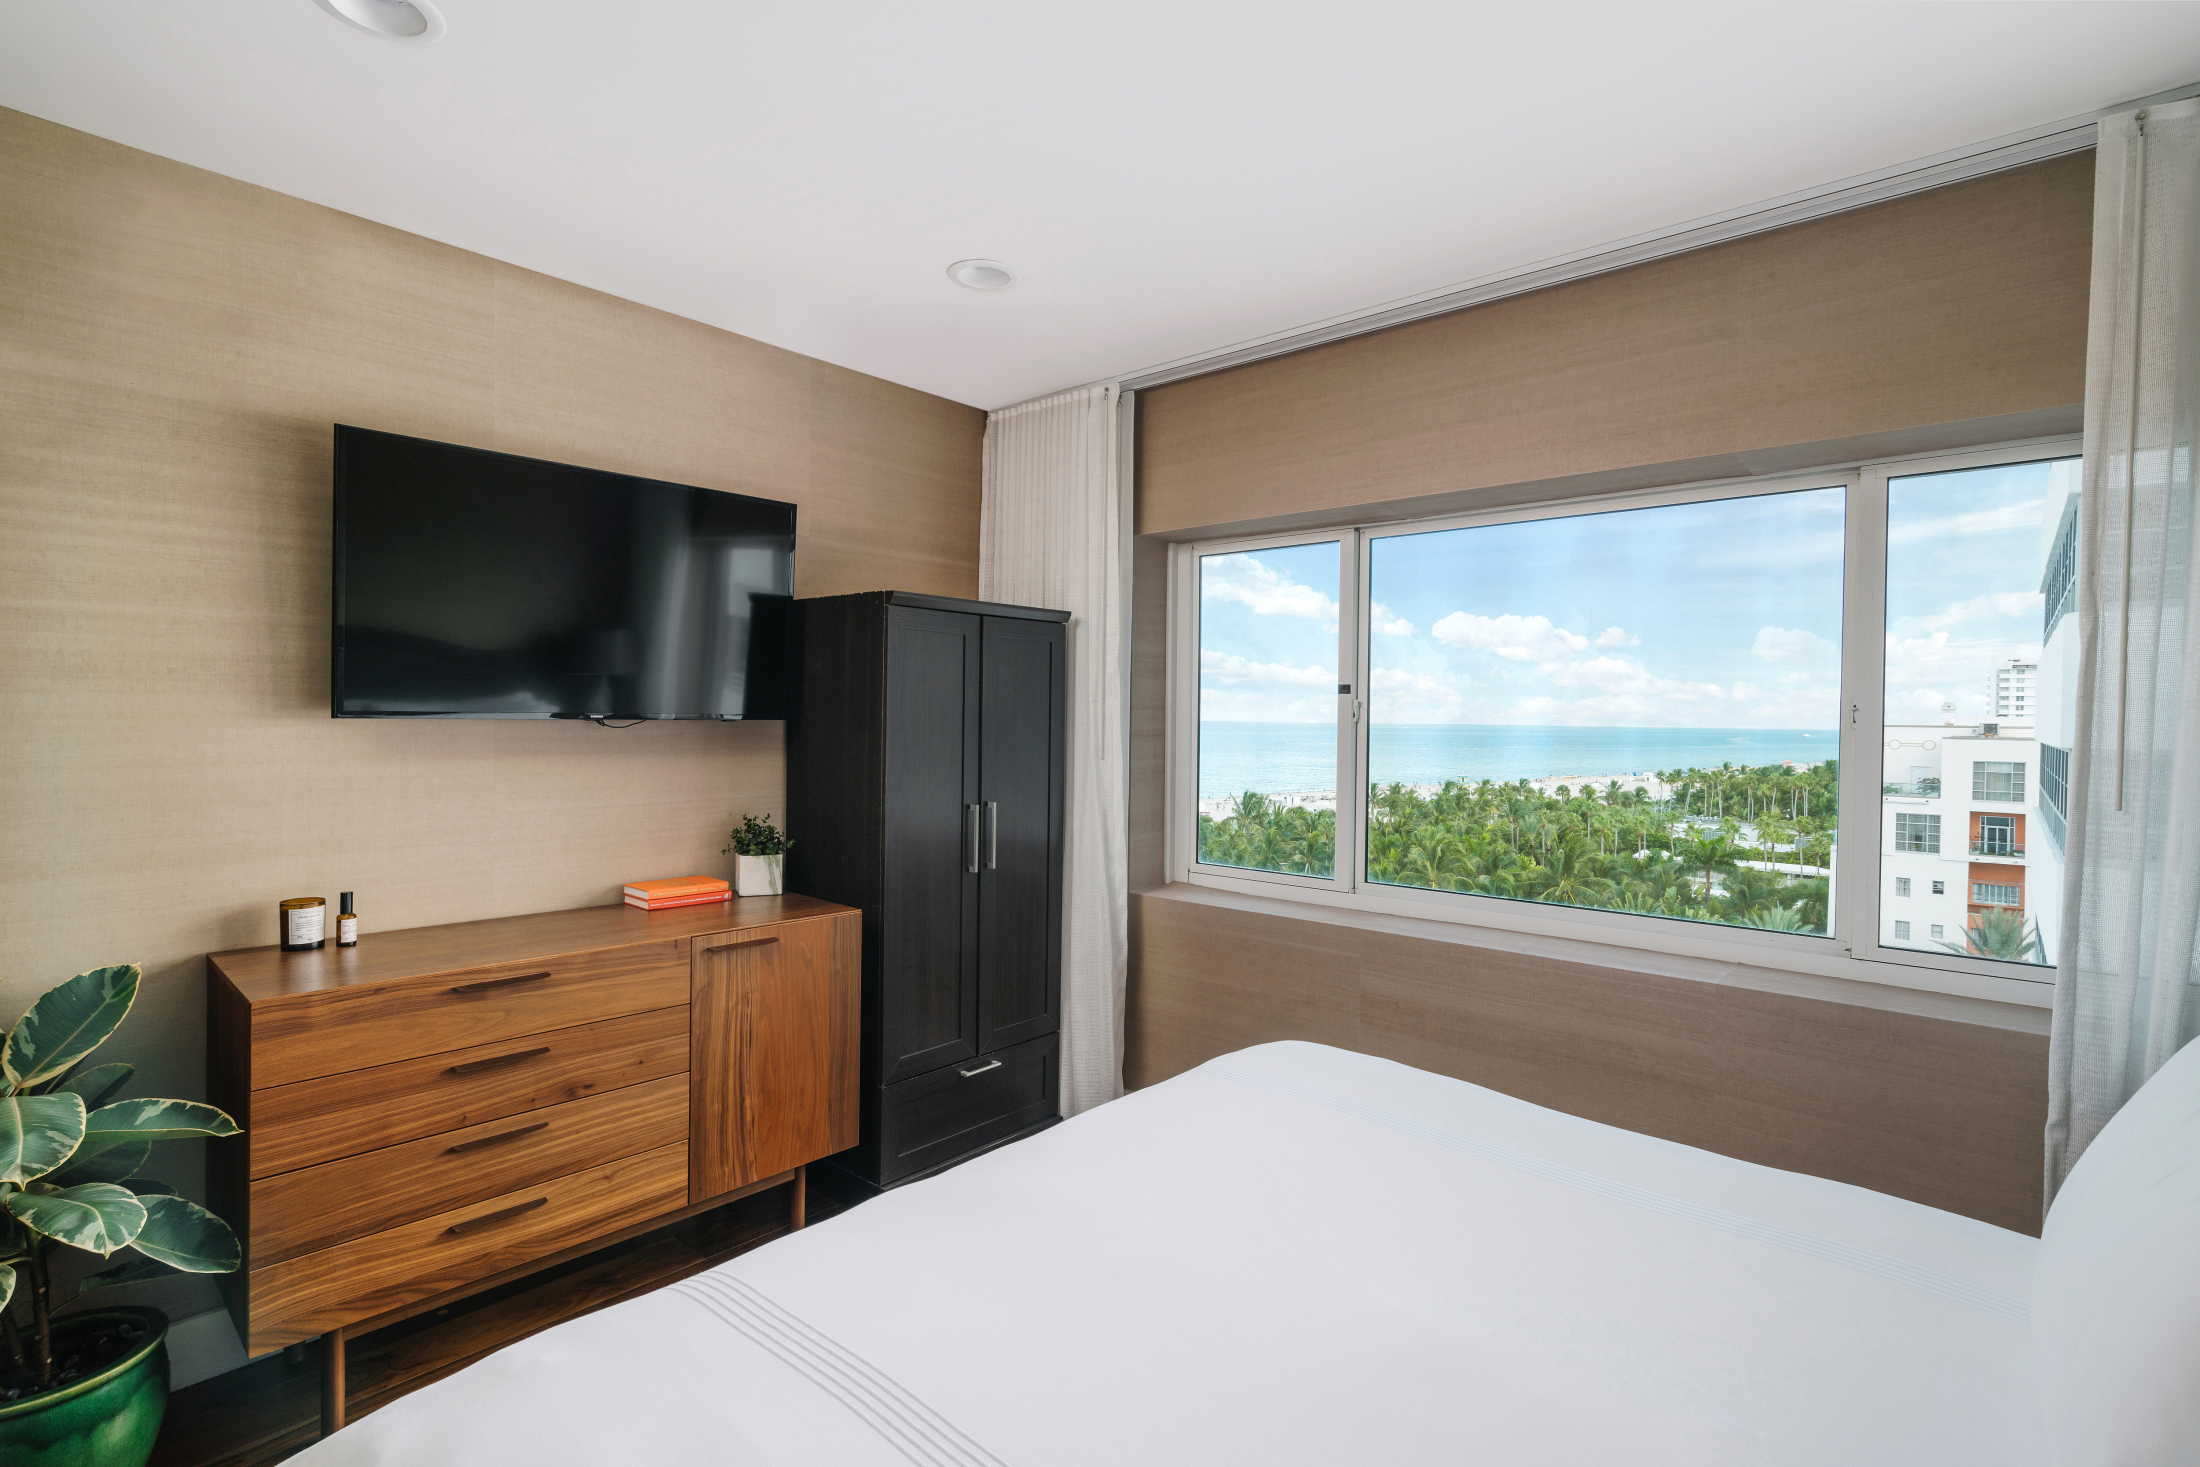 Window view of the ocean and treetops from the King bed